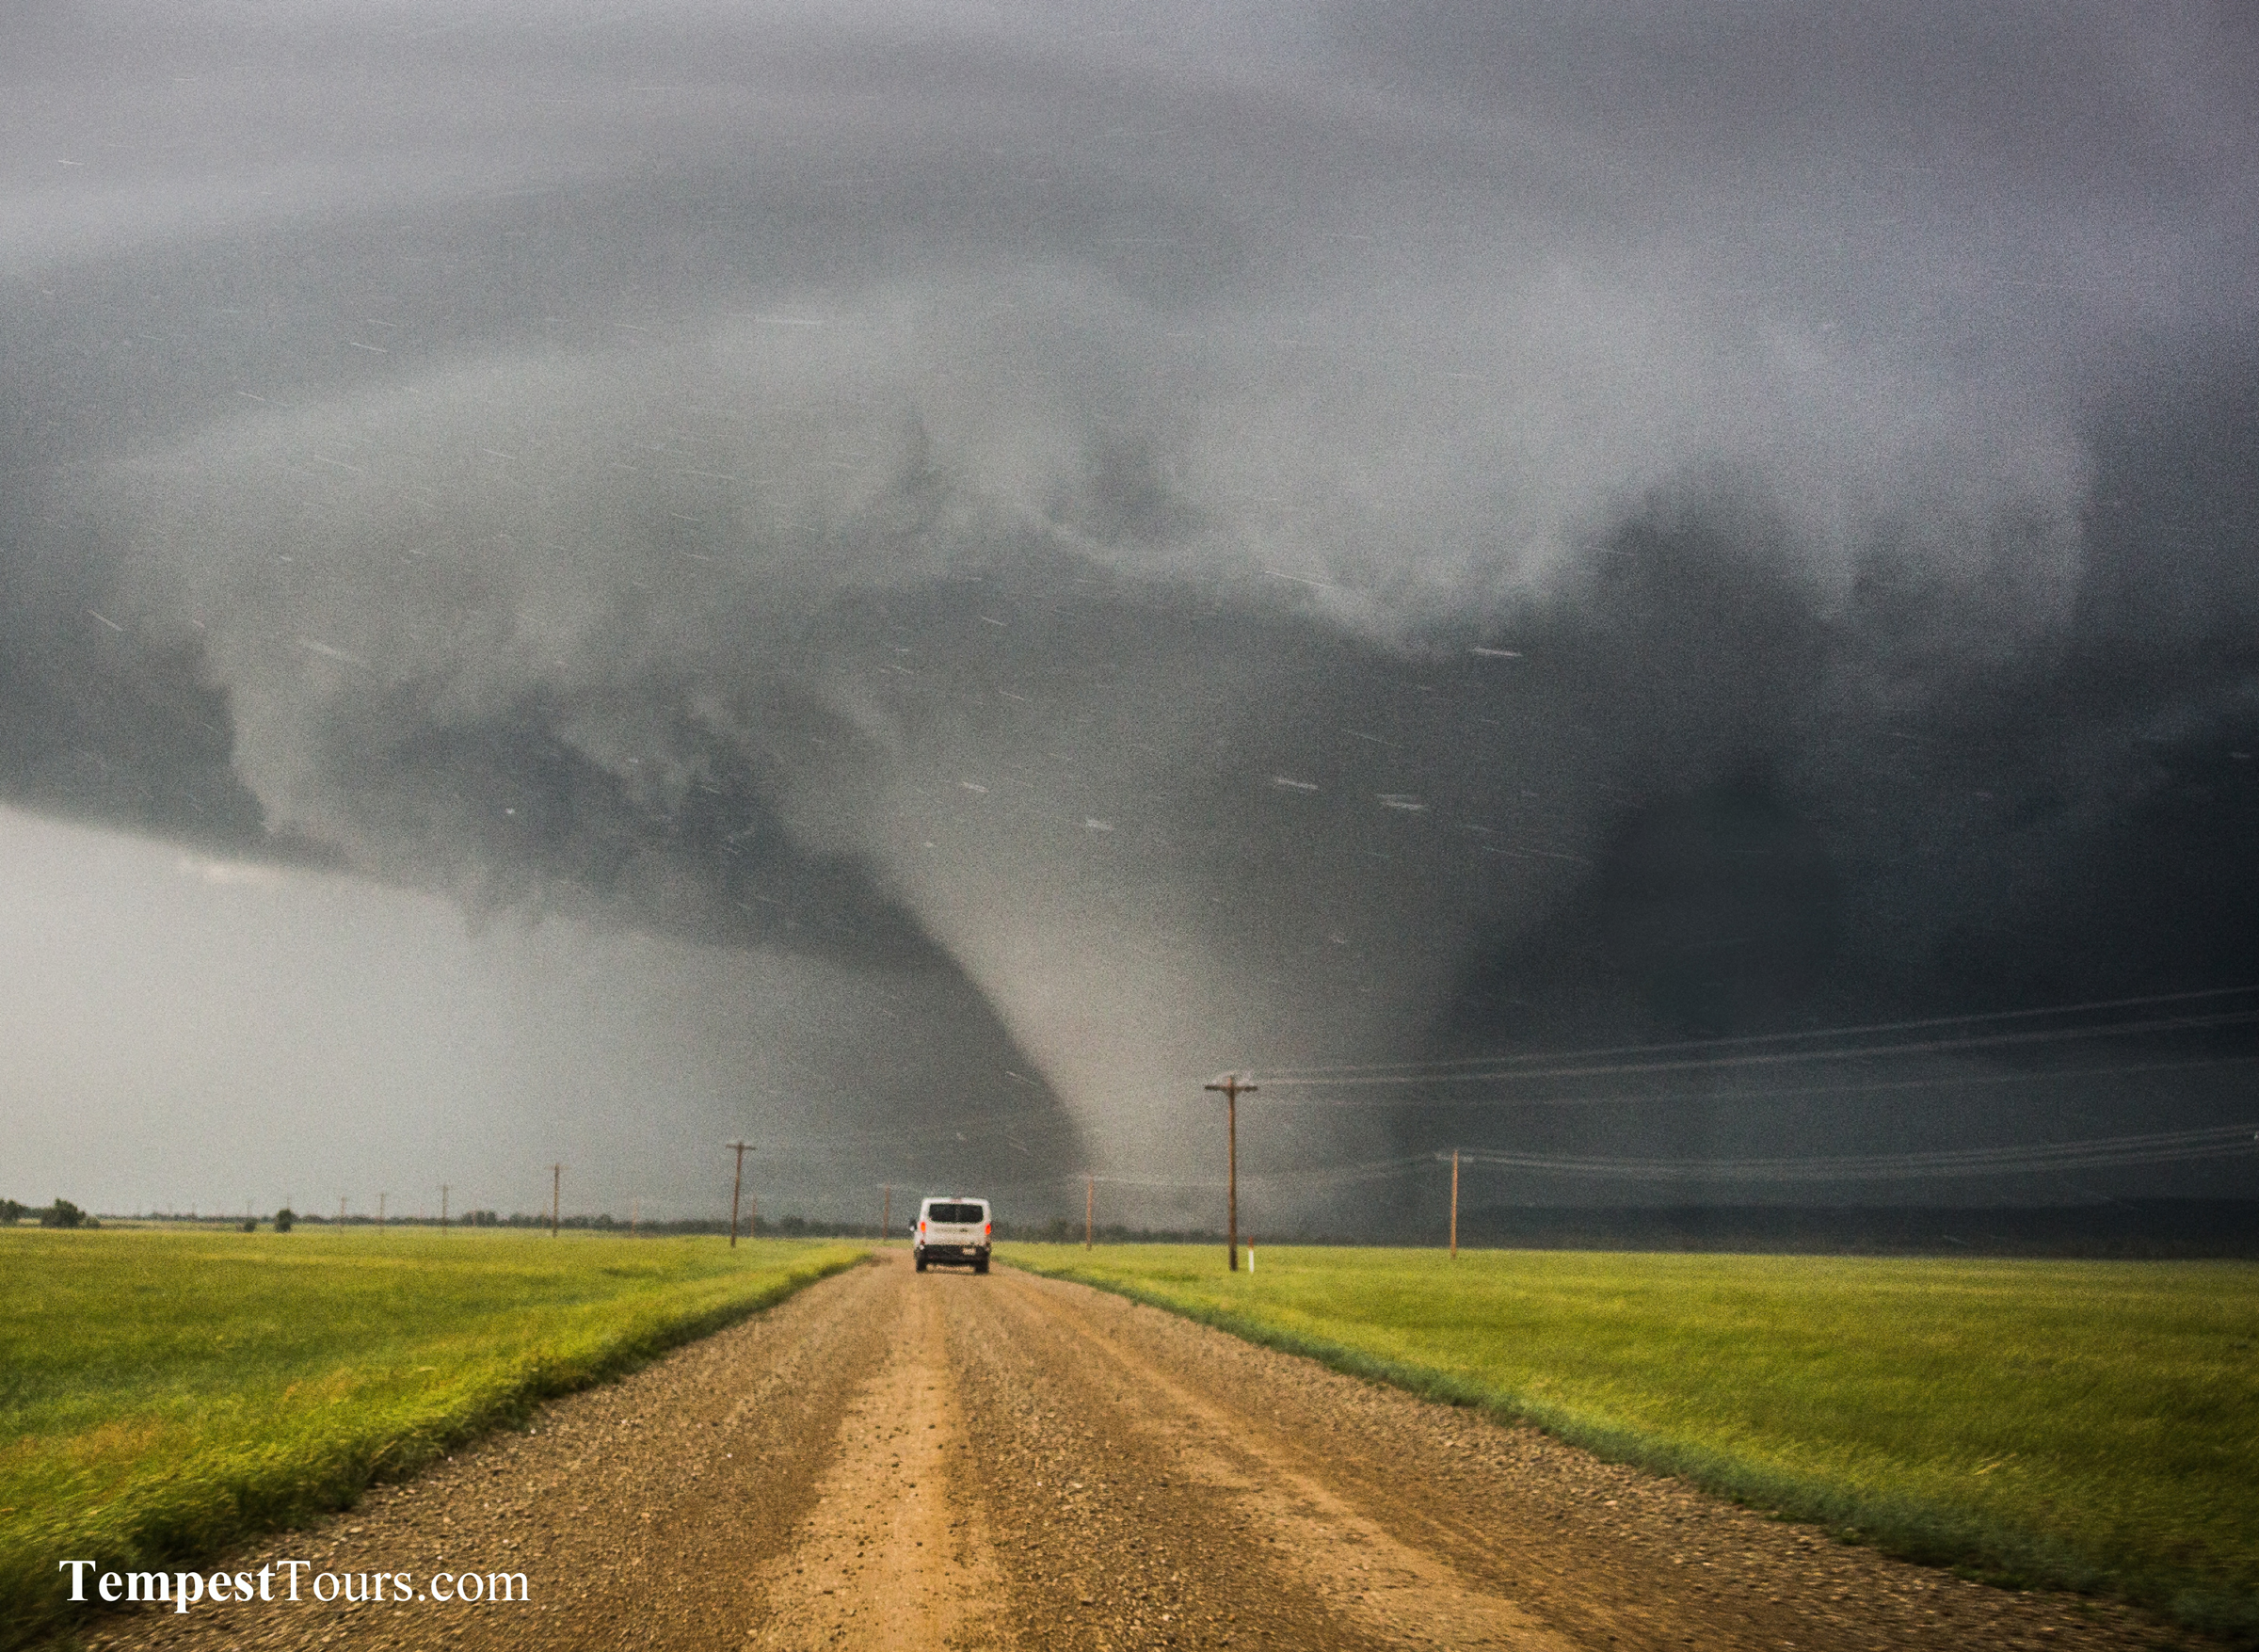 Copyright_Tempest_Tours_Storm_Chasing_Expeditions_Capitol_Tornado_IMG_6856-1 copy.jpg